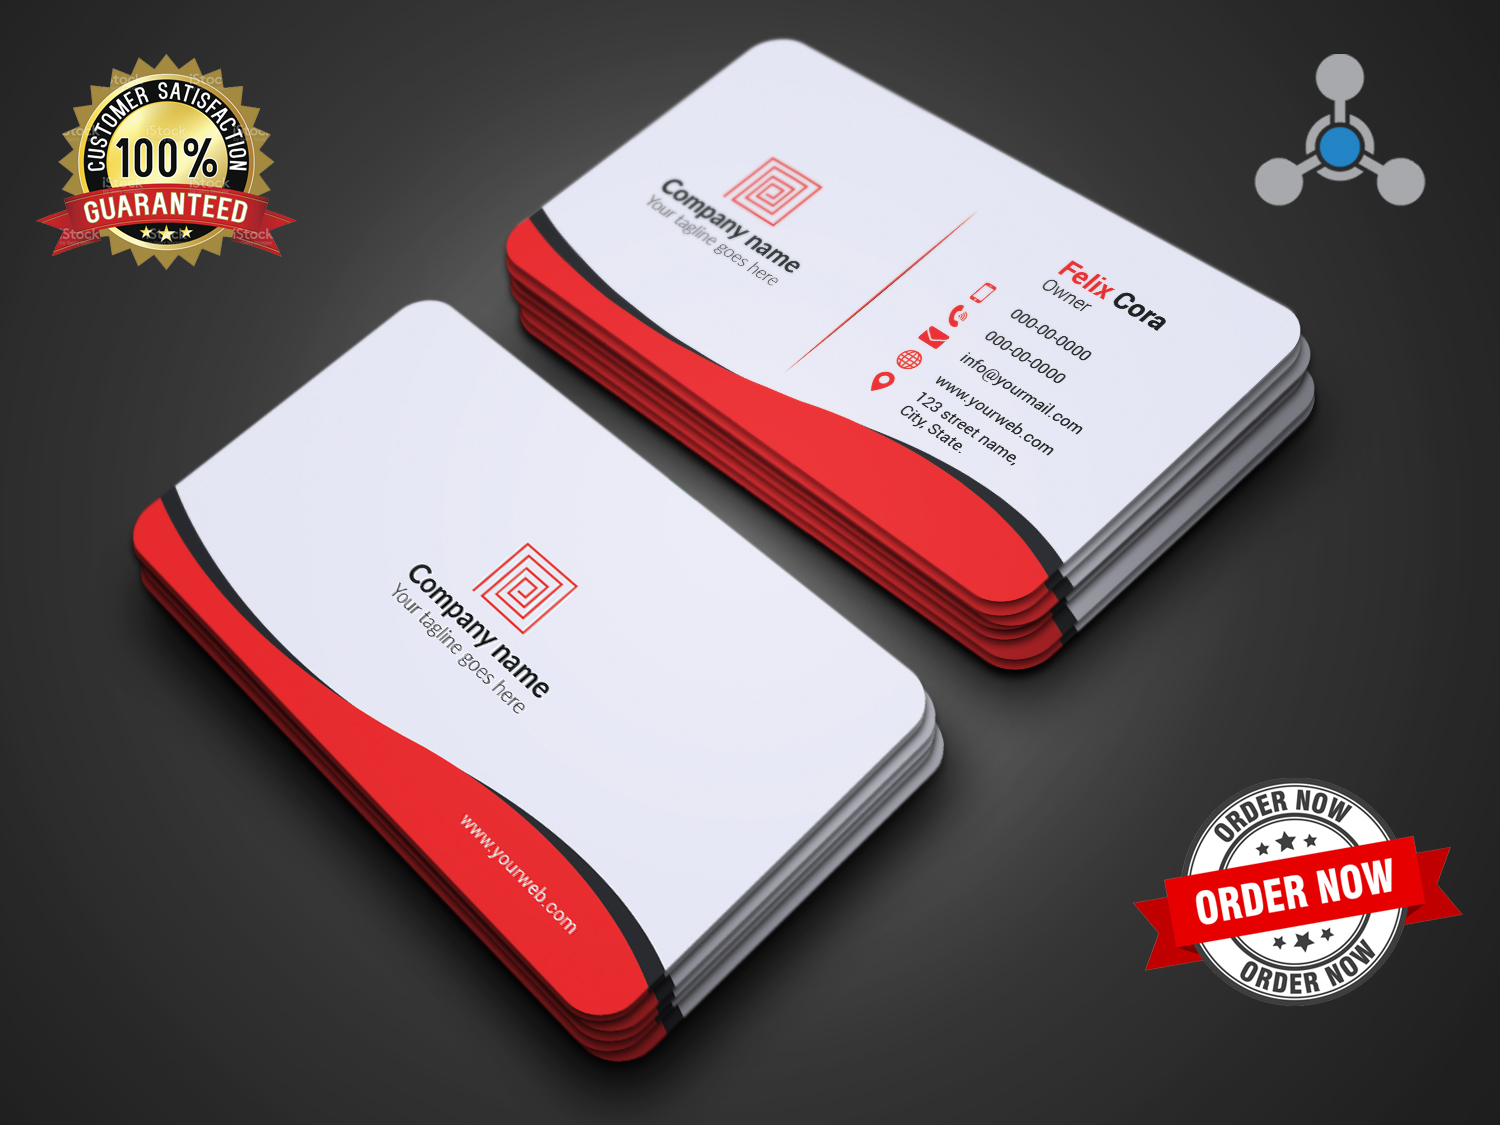 I will provide professional modern business card design services